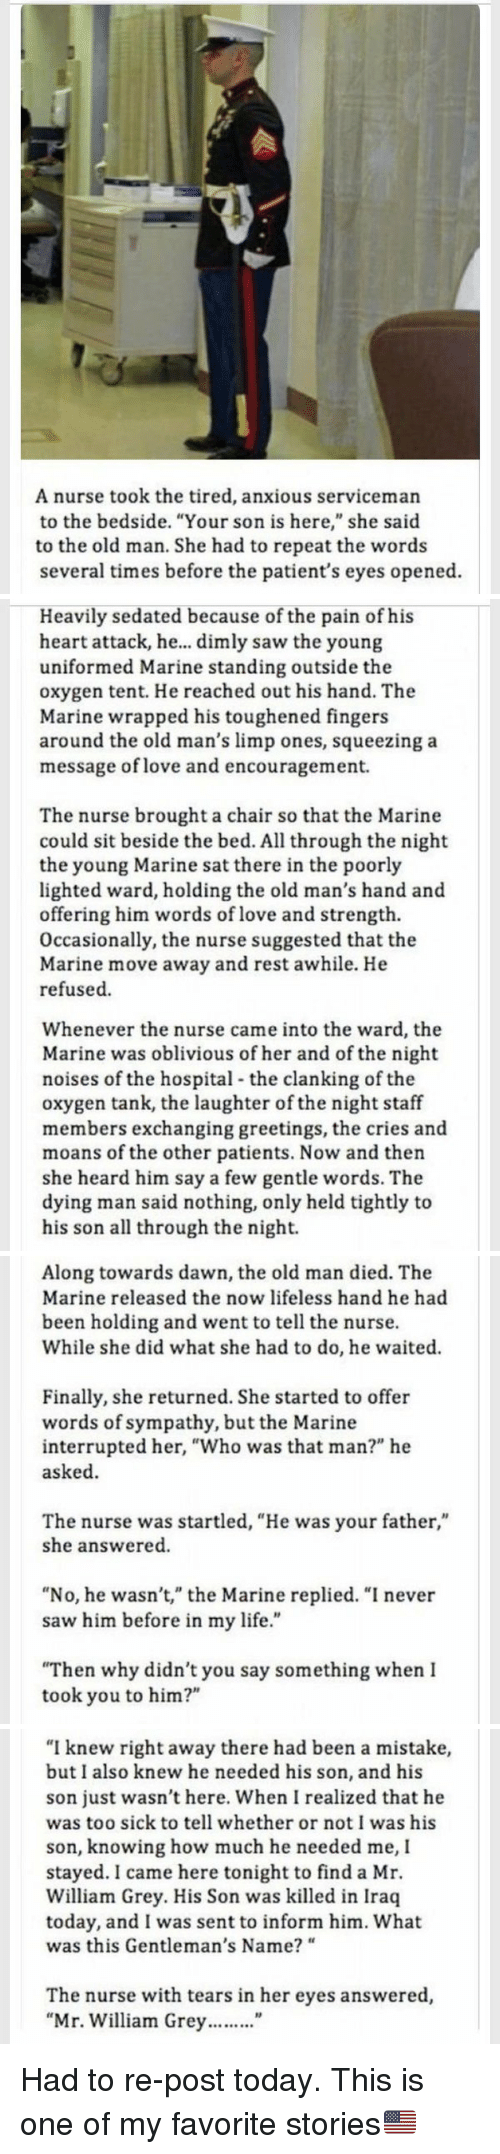 "Obliviates: A nurse took the tired, anxious serviceman  to the bedside. ""Your son is here,"" she said  to the old man. She had to repeat the words  several times before the patient's eyes opened   Heavily sedated because of the pain of his  heart attack, he... dimly saw the young  uniformed Marine standing outside the  oxygen tent. He reached out his hand. The  Marine wrapped his toughened fingers  around the old man's limp ones, squeezing a  message of love and encouragement.  The nurse brought a chair so that the Marine  could sit beside the bed. All through the night  the young Marine satthere in the poorly  lighted ward, holding the old man's hand and  offering him words of love and strength.  Occasionally, the nurse suggested that the  Marine move away and rest awhile. He  refused.  Whenever the nurse came into the ward, the  Marine was oblivious of her and of the night  noises of the hospital the clanking of the  oxygen tank, the laughter of the night staff  members exchanging greetings, the cries and  moans of the other patients. Now and then  she heard him say a few gentle words. The  dying man said nothing, only held tightly to  his son all through the night.   Along towards dawn, the old man died. The  Marine released the now lifeless hand he had  been holding and went to tell the nurse.  While she did what she had to do, he waited.  Finally, she returned. She started to offer  words of sympathy, but the Marine  interrupted her, ""Who was that man?"" he  asked.  The nurse was startled, ""He was your father,""  she answered.  ""No, he wasn't,"" the Marine replied. ""I never  saw him before in my life.""  ""Then why didn't you say something when I  took you to him?""   ""I knew right away there had been a mistake,  but I also knew he needed his son, and his  son just wasn't here. When I realized that he  was too sick to tell whether or not I was his  son, knowing how much he needed me, I  stayed. I came here tonight to find a Mr.  William Grey. His Son was killed in Iraq  today, and I was sent to inform him. What  was this Gentleman's Name?  The nurse with tears in her eyes answered,  Mr. William Grey Had to re-post today. This is one of my favorite stories🇺🇸"